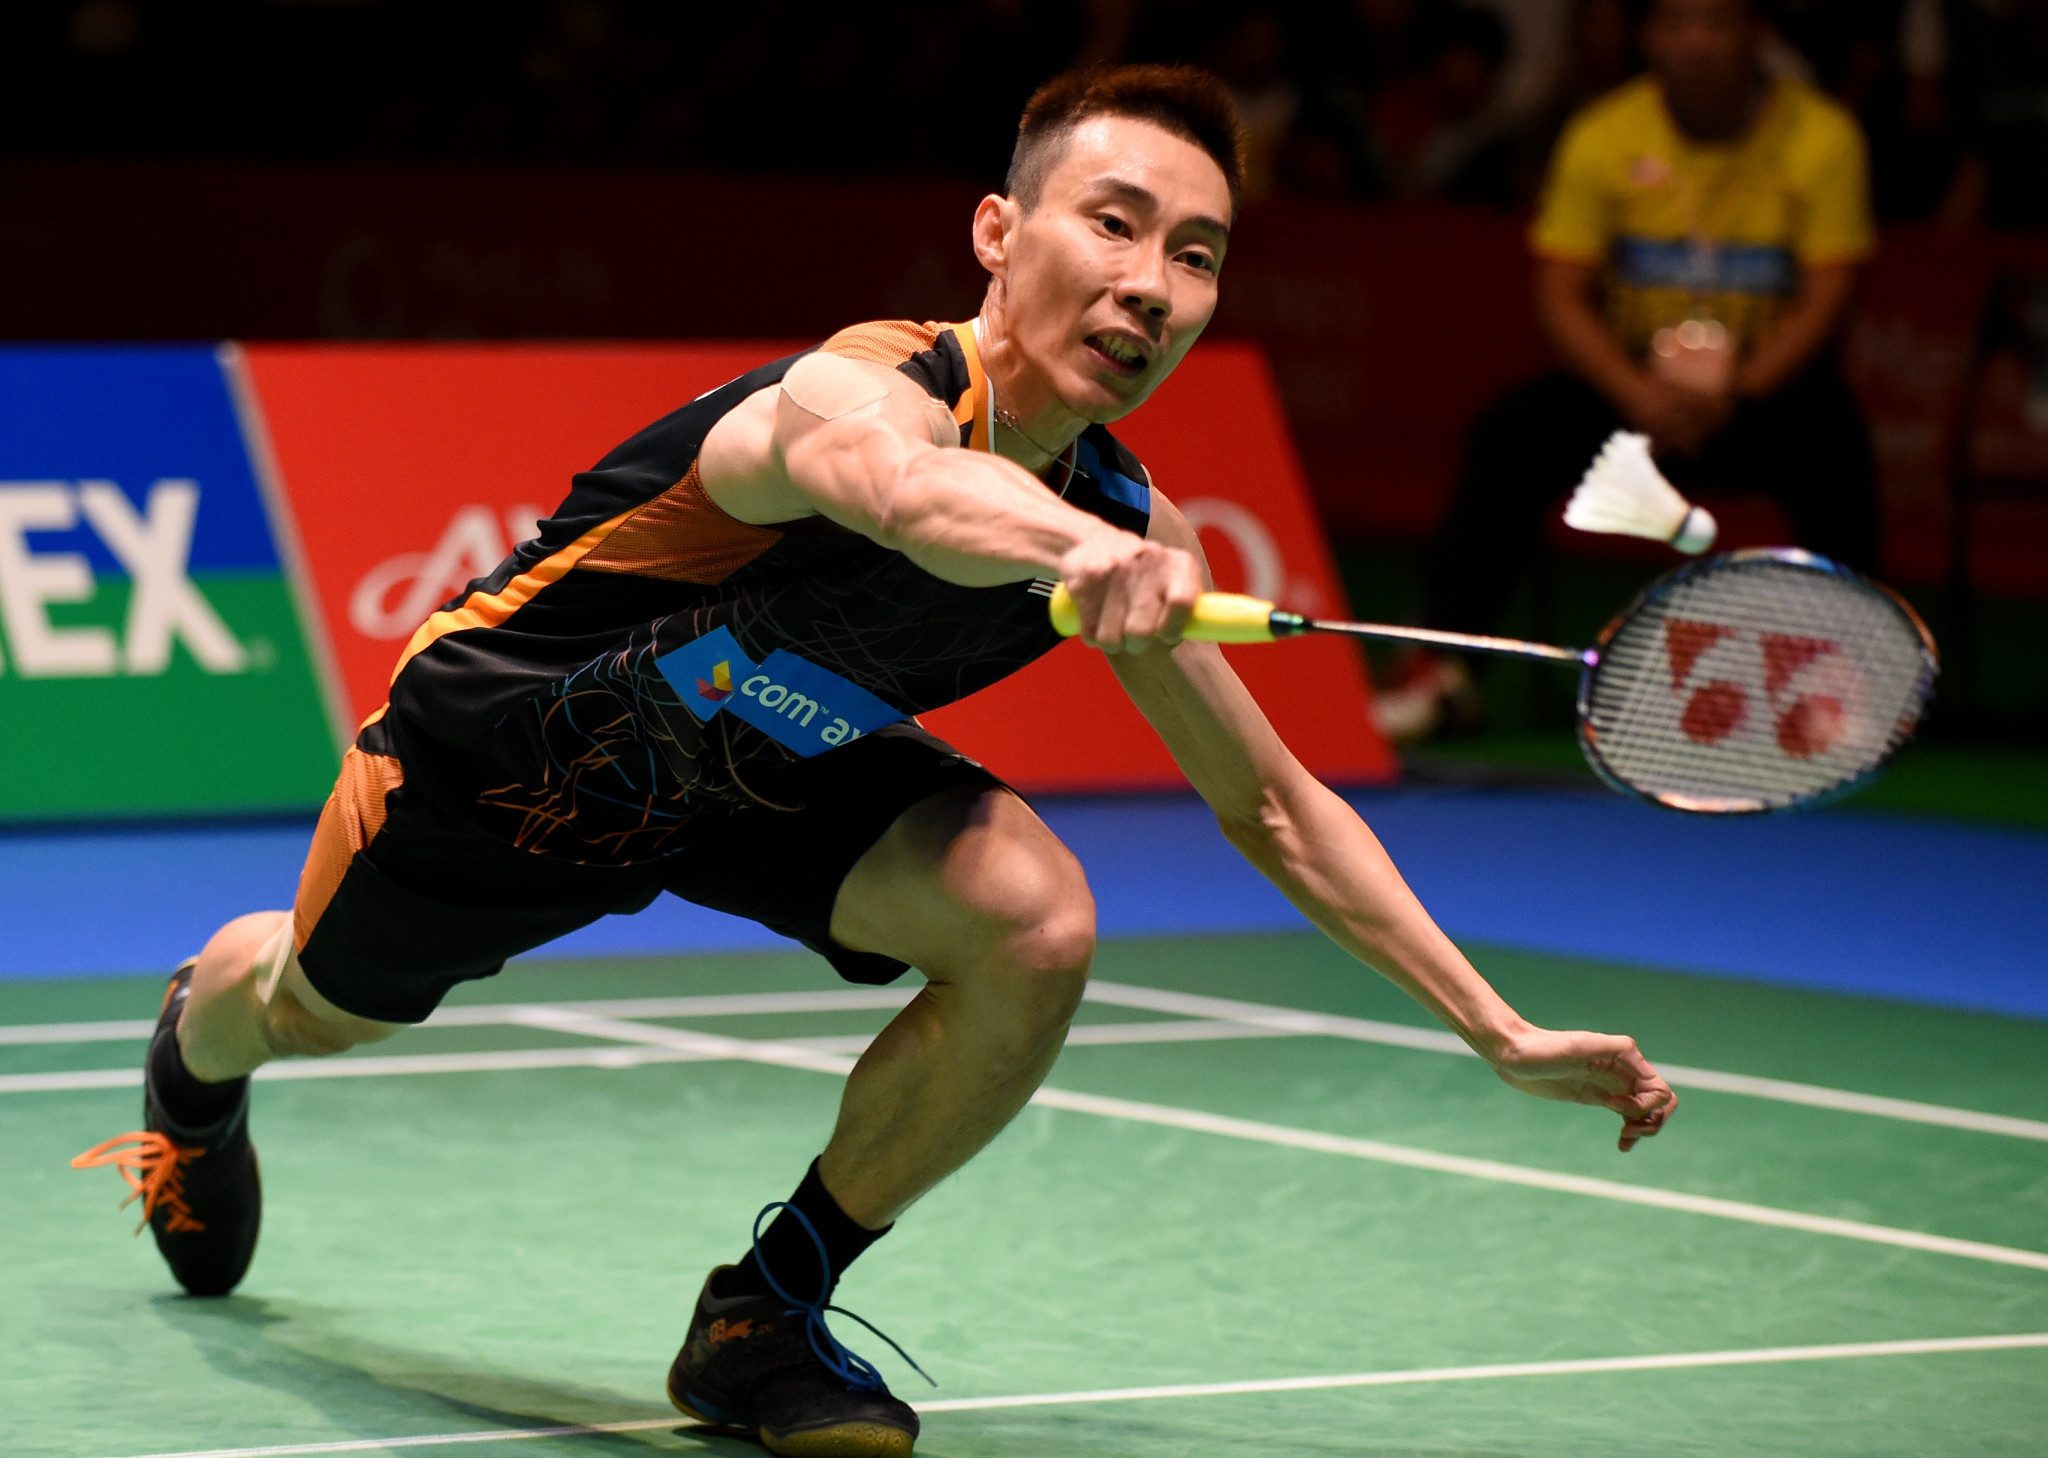 Lee Chong Wei will let the Badminton Association of Malaysia decide whether he competes at Gold Coast 2018 ©Getty Images